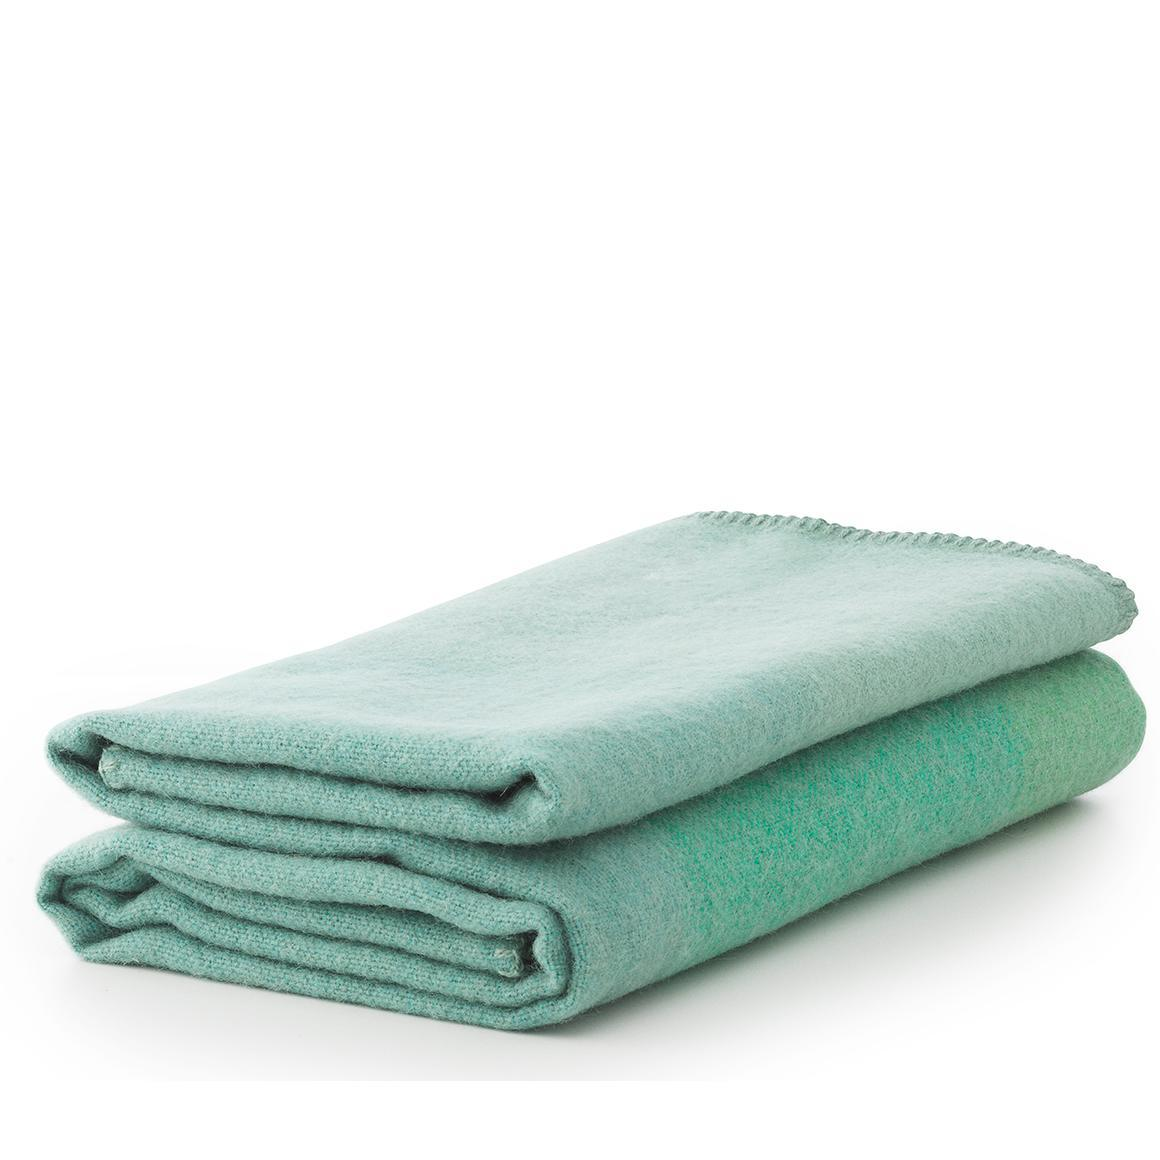 Normann Copenhagen Tint Throw - Eclectic Cool  - 14